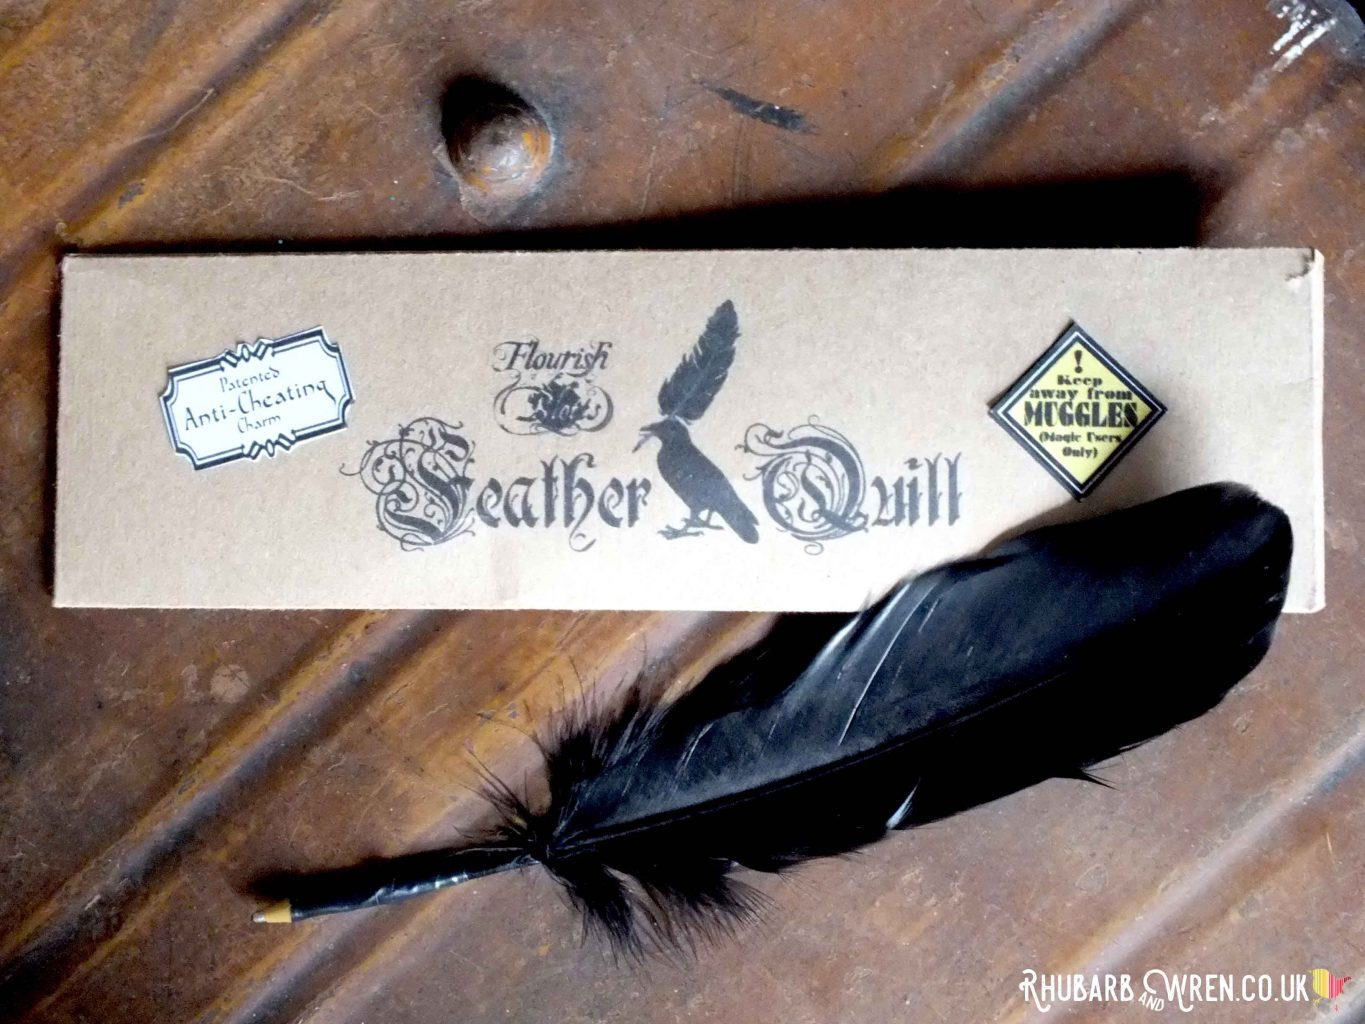 DIY Flourish and Blotts feather quill for a DIY Harry Potter party bag